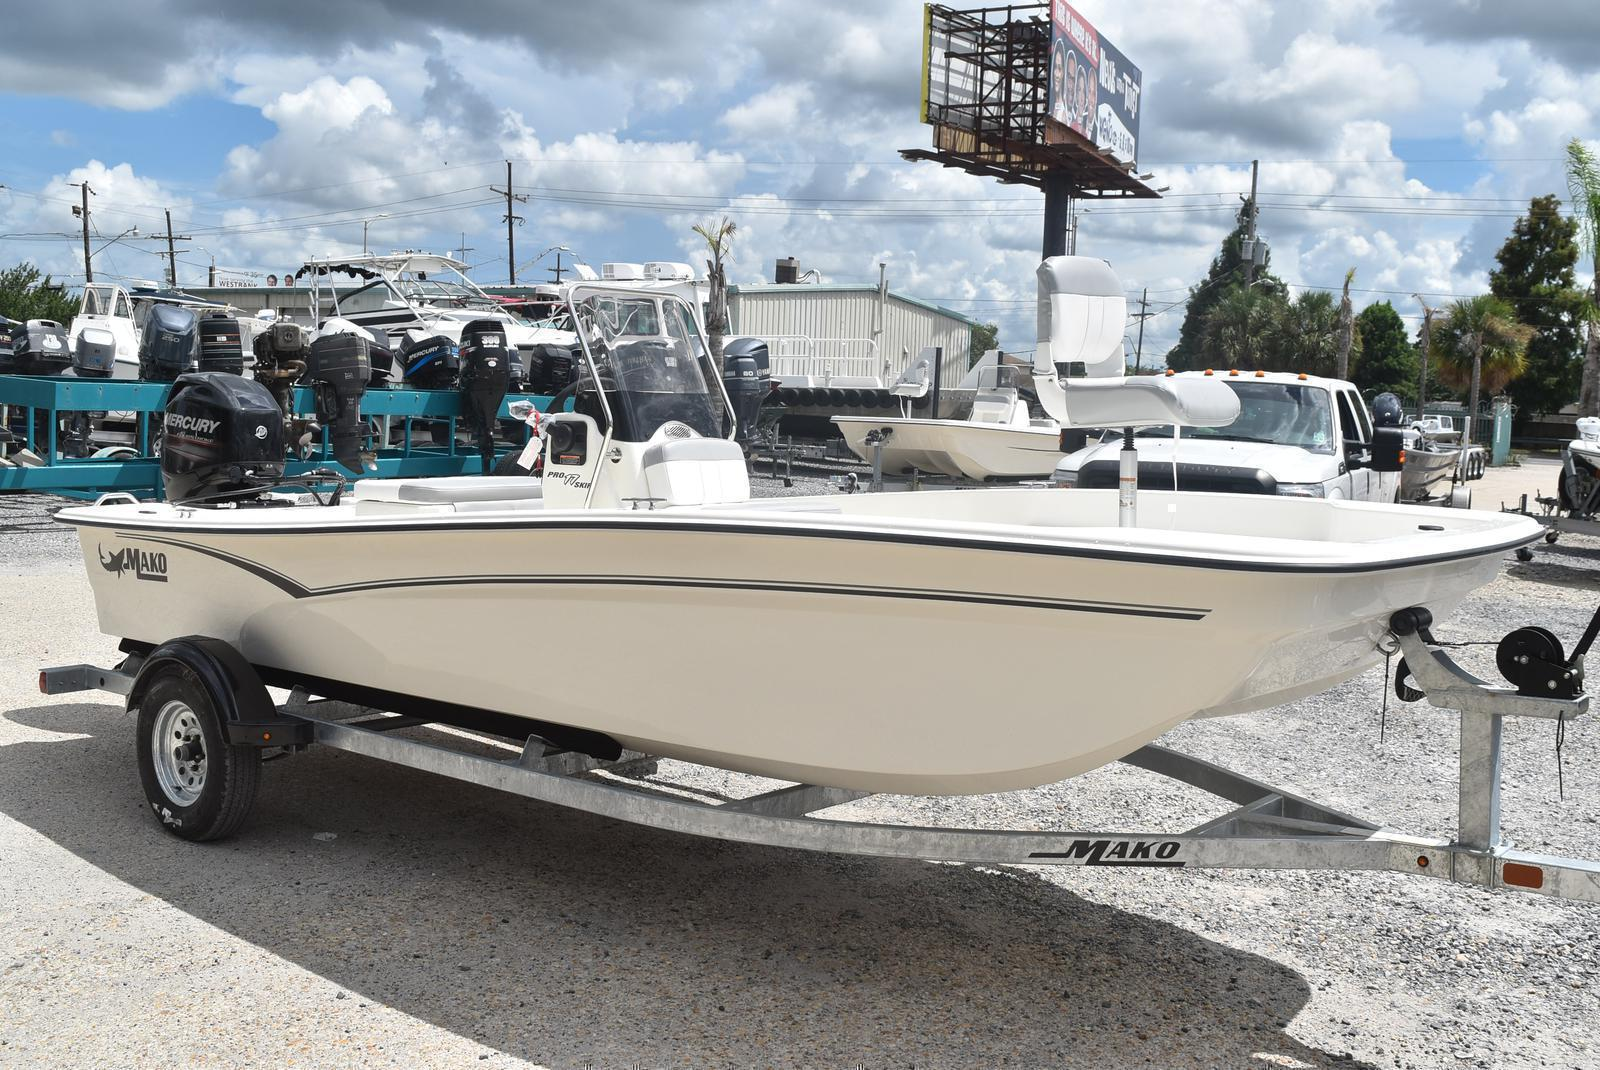 2020 Mako boat for sale, model of the boat is Pro Skiff 17, 75 ELPT & Image # 645 of 702